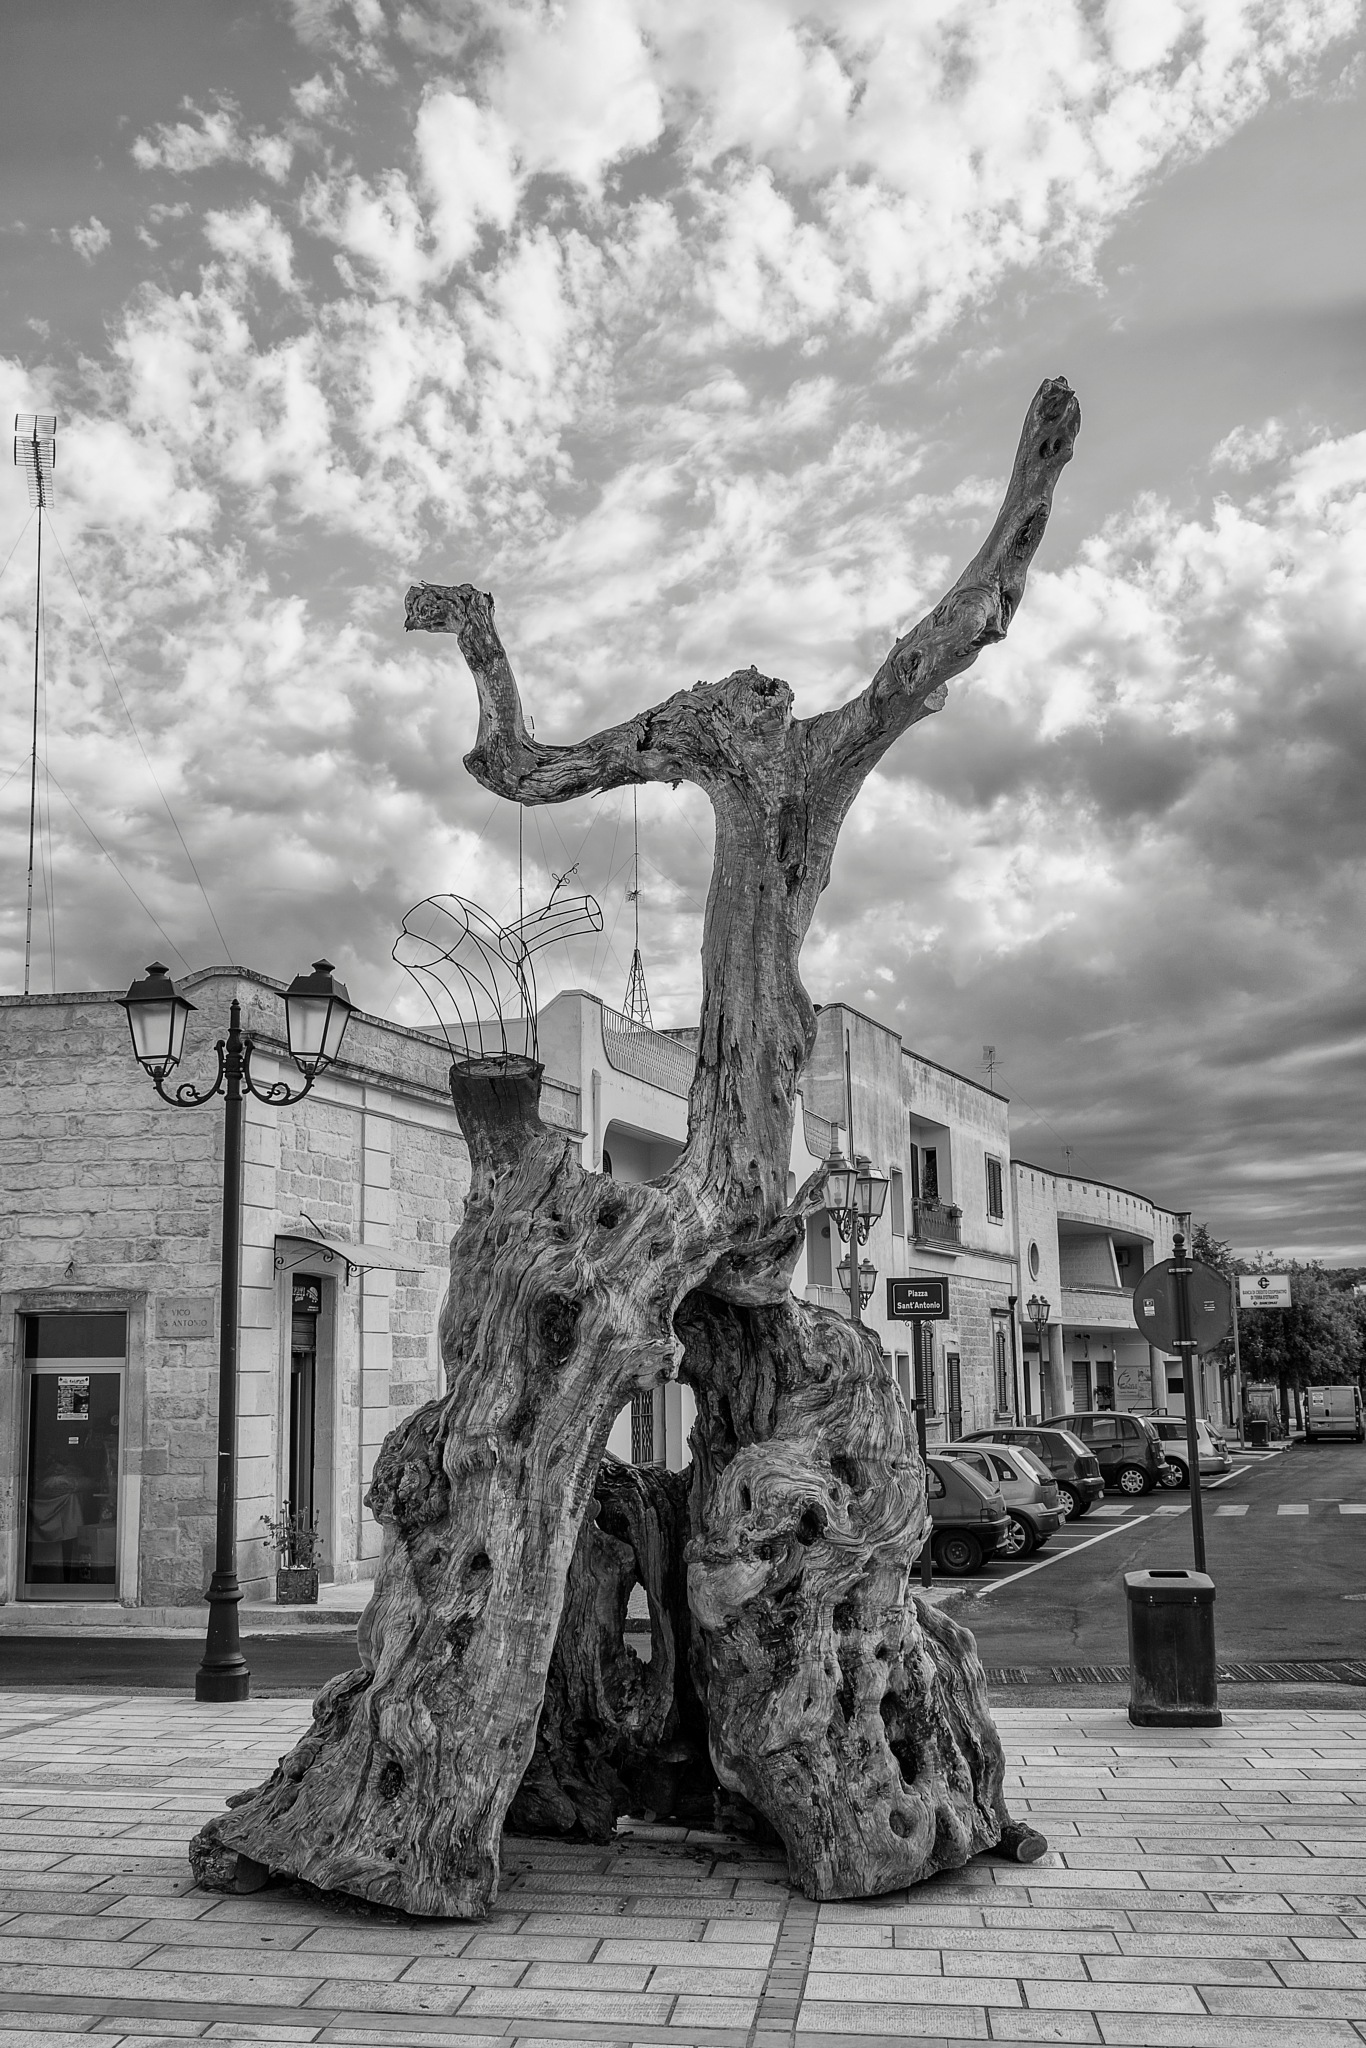 I WAS AN OLIVE TREE by Alessandro Errico